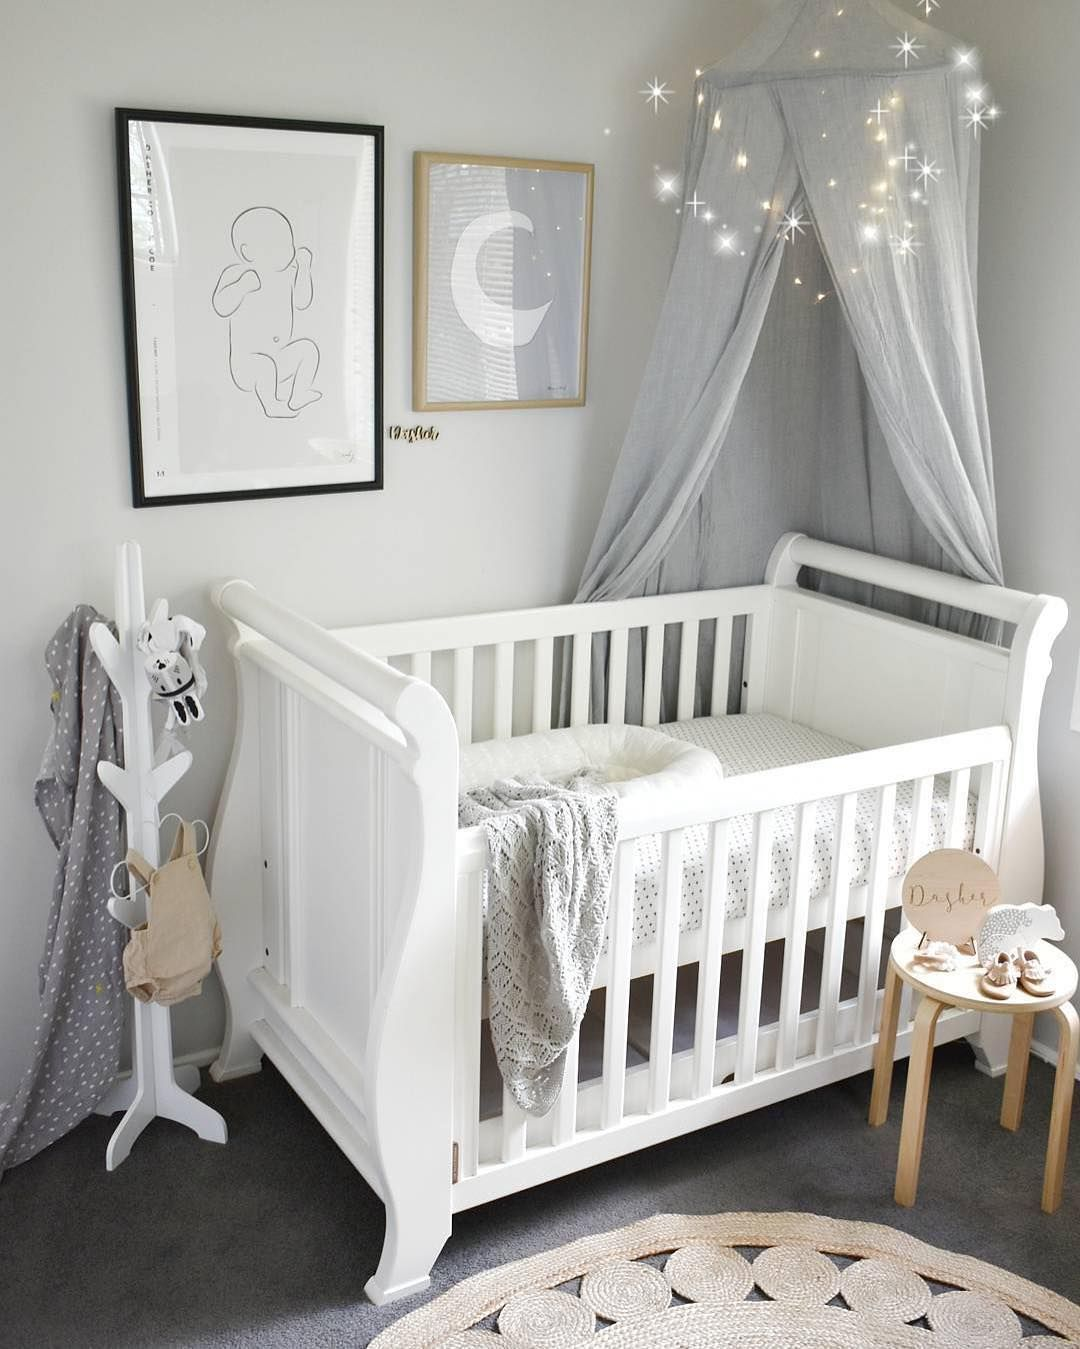 Neutral Nursery Inspiration From Booricollections On Instagram